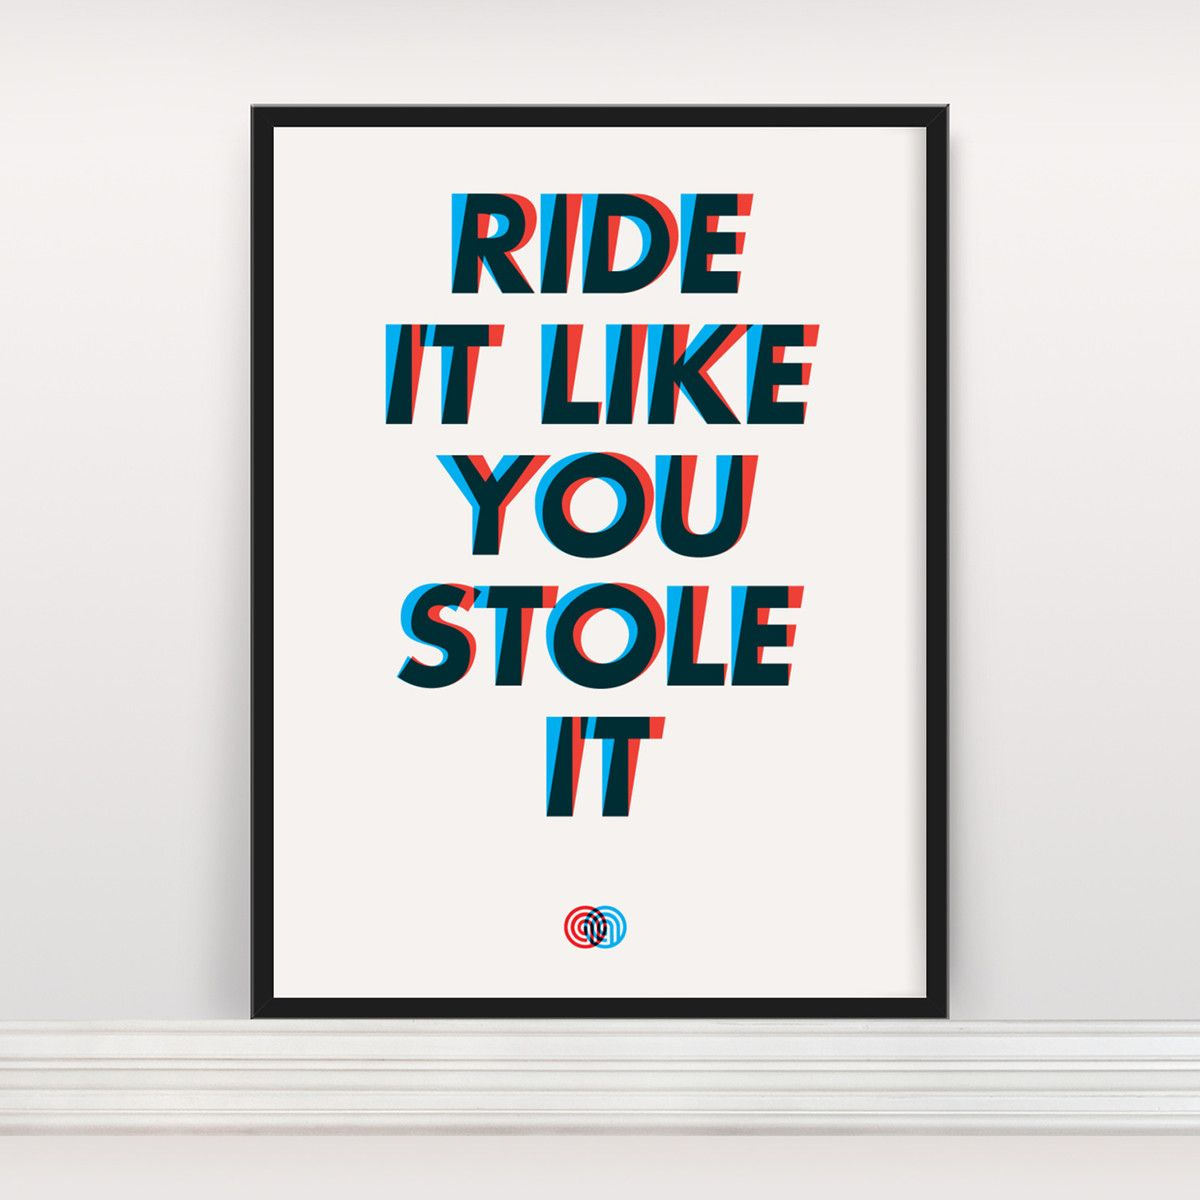 Serigrafias Libra Me Ride It Neat Stuff Pinterest Thoughts Qoutes And Wise